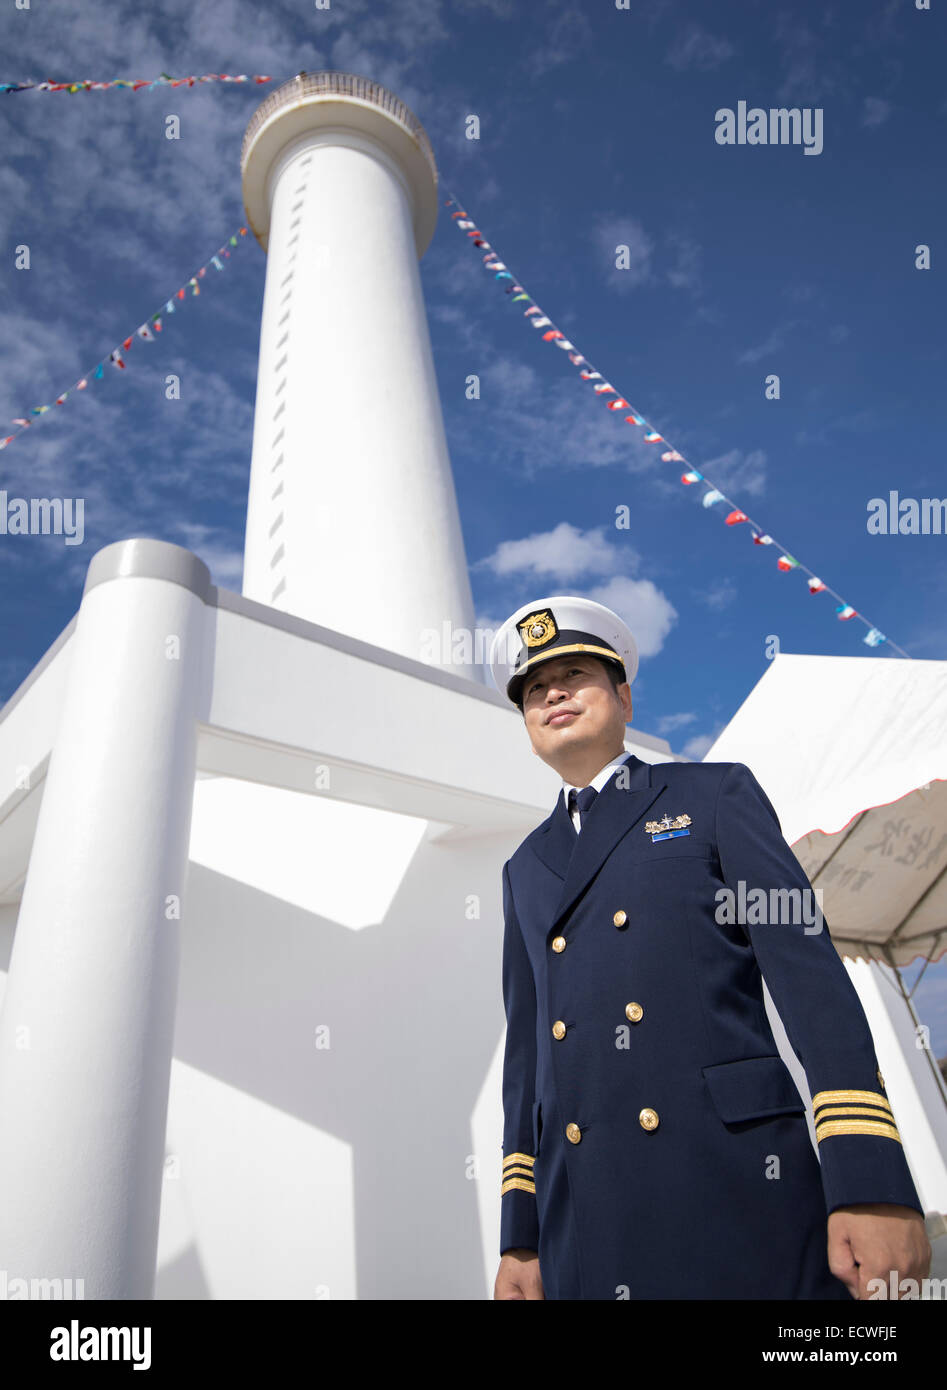 Japanese Self Defense Force coastguard officer stands in front of the Cape Zanpa Lighthouse, Yomitan, Okinawa, Japan - Stock Image